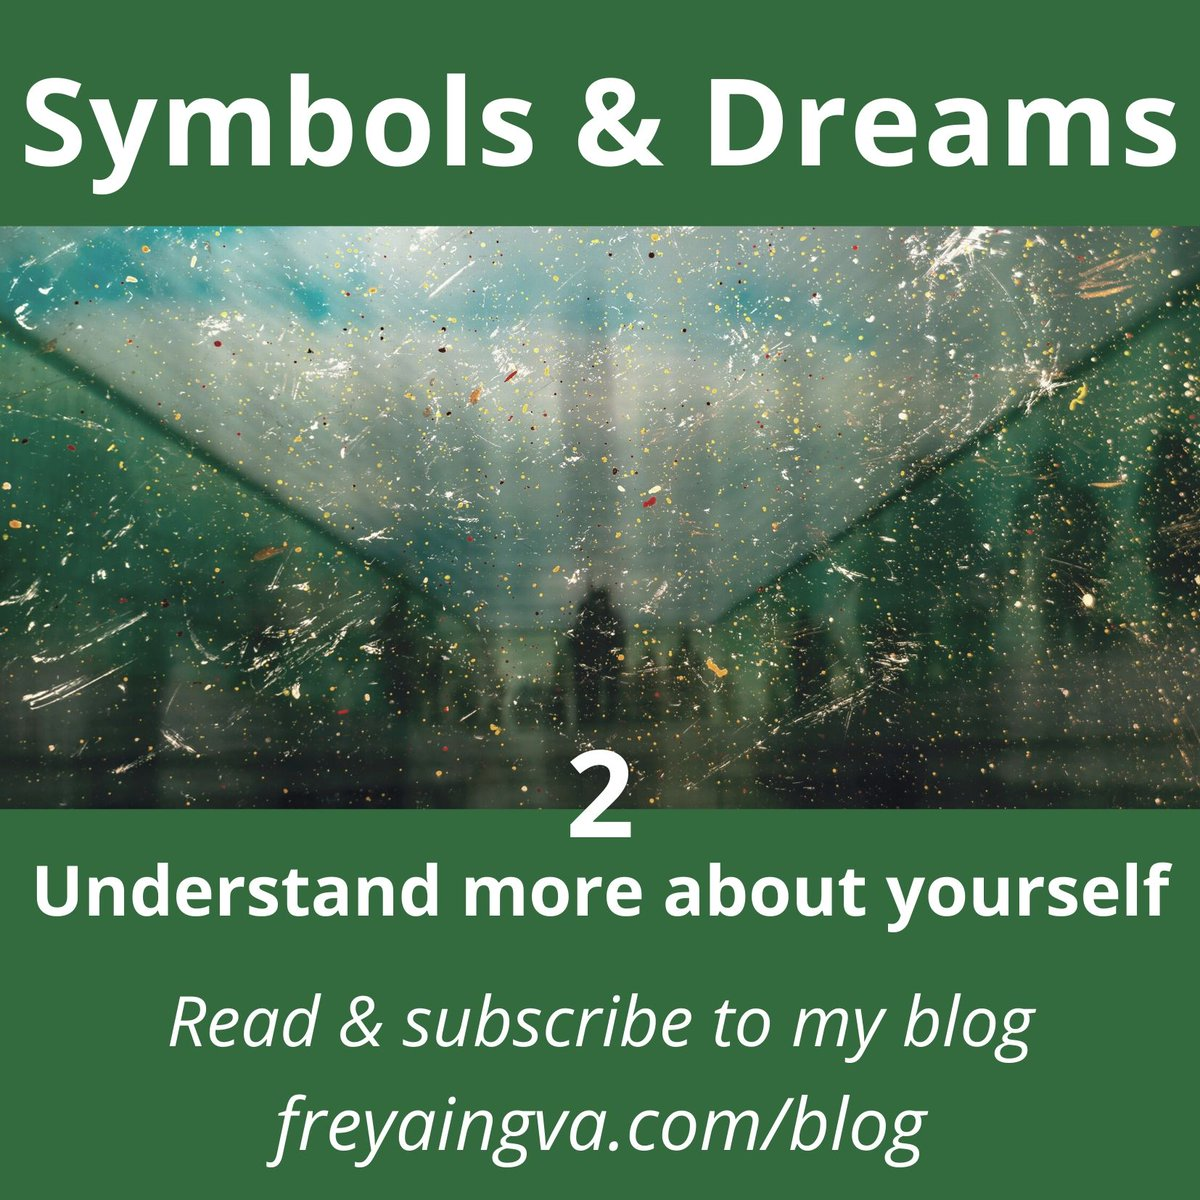 Understand more about yourself #reading the second part of #Symbols & #Dreams #Read on https://www.freyaingva.com/blog  #symbol #dream #selfhelp #resource #knowledge #innerknowing #FridayWithFreya #blog #bulletin #diviner #dowser #oracle #tealeafreader #divining #dowsing #tealeafreadingpic.twitter.com/MLJblLWPlN